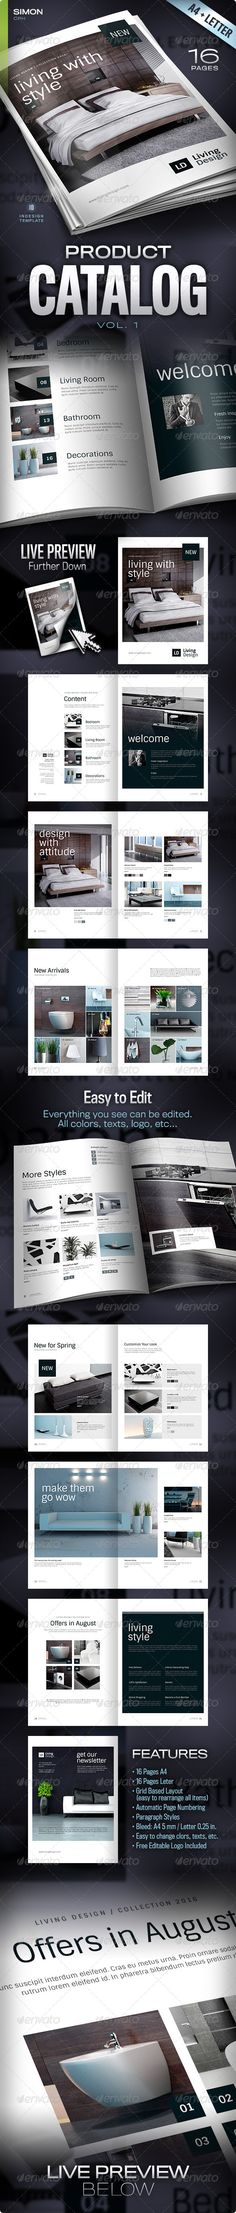 Product Catalog Vol. 1 It looks pretty generic, still I wanted to pin it because of it's simple layout!